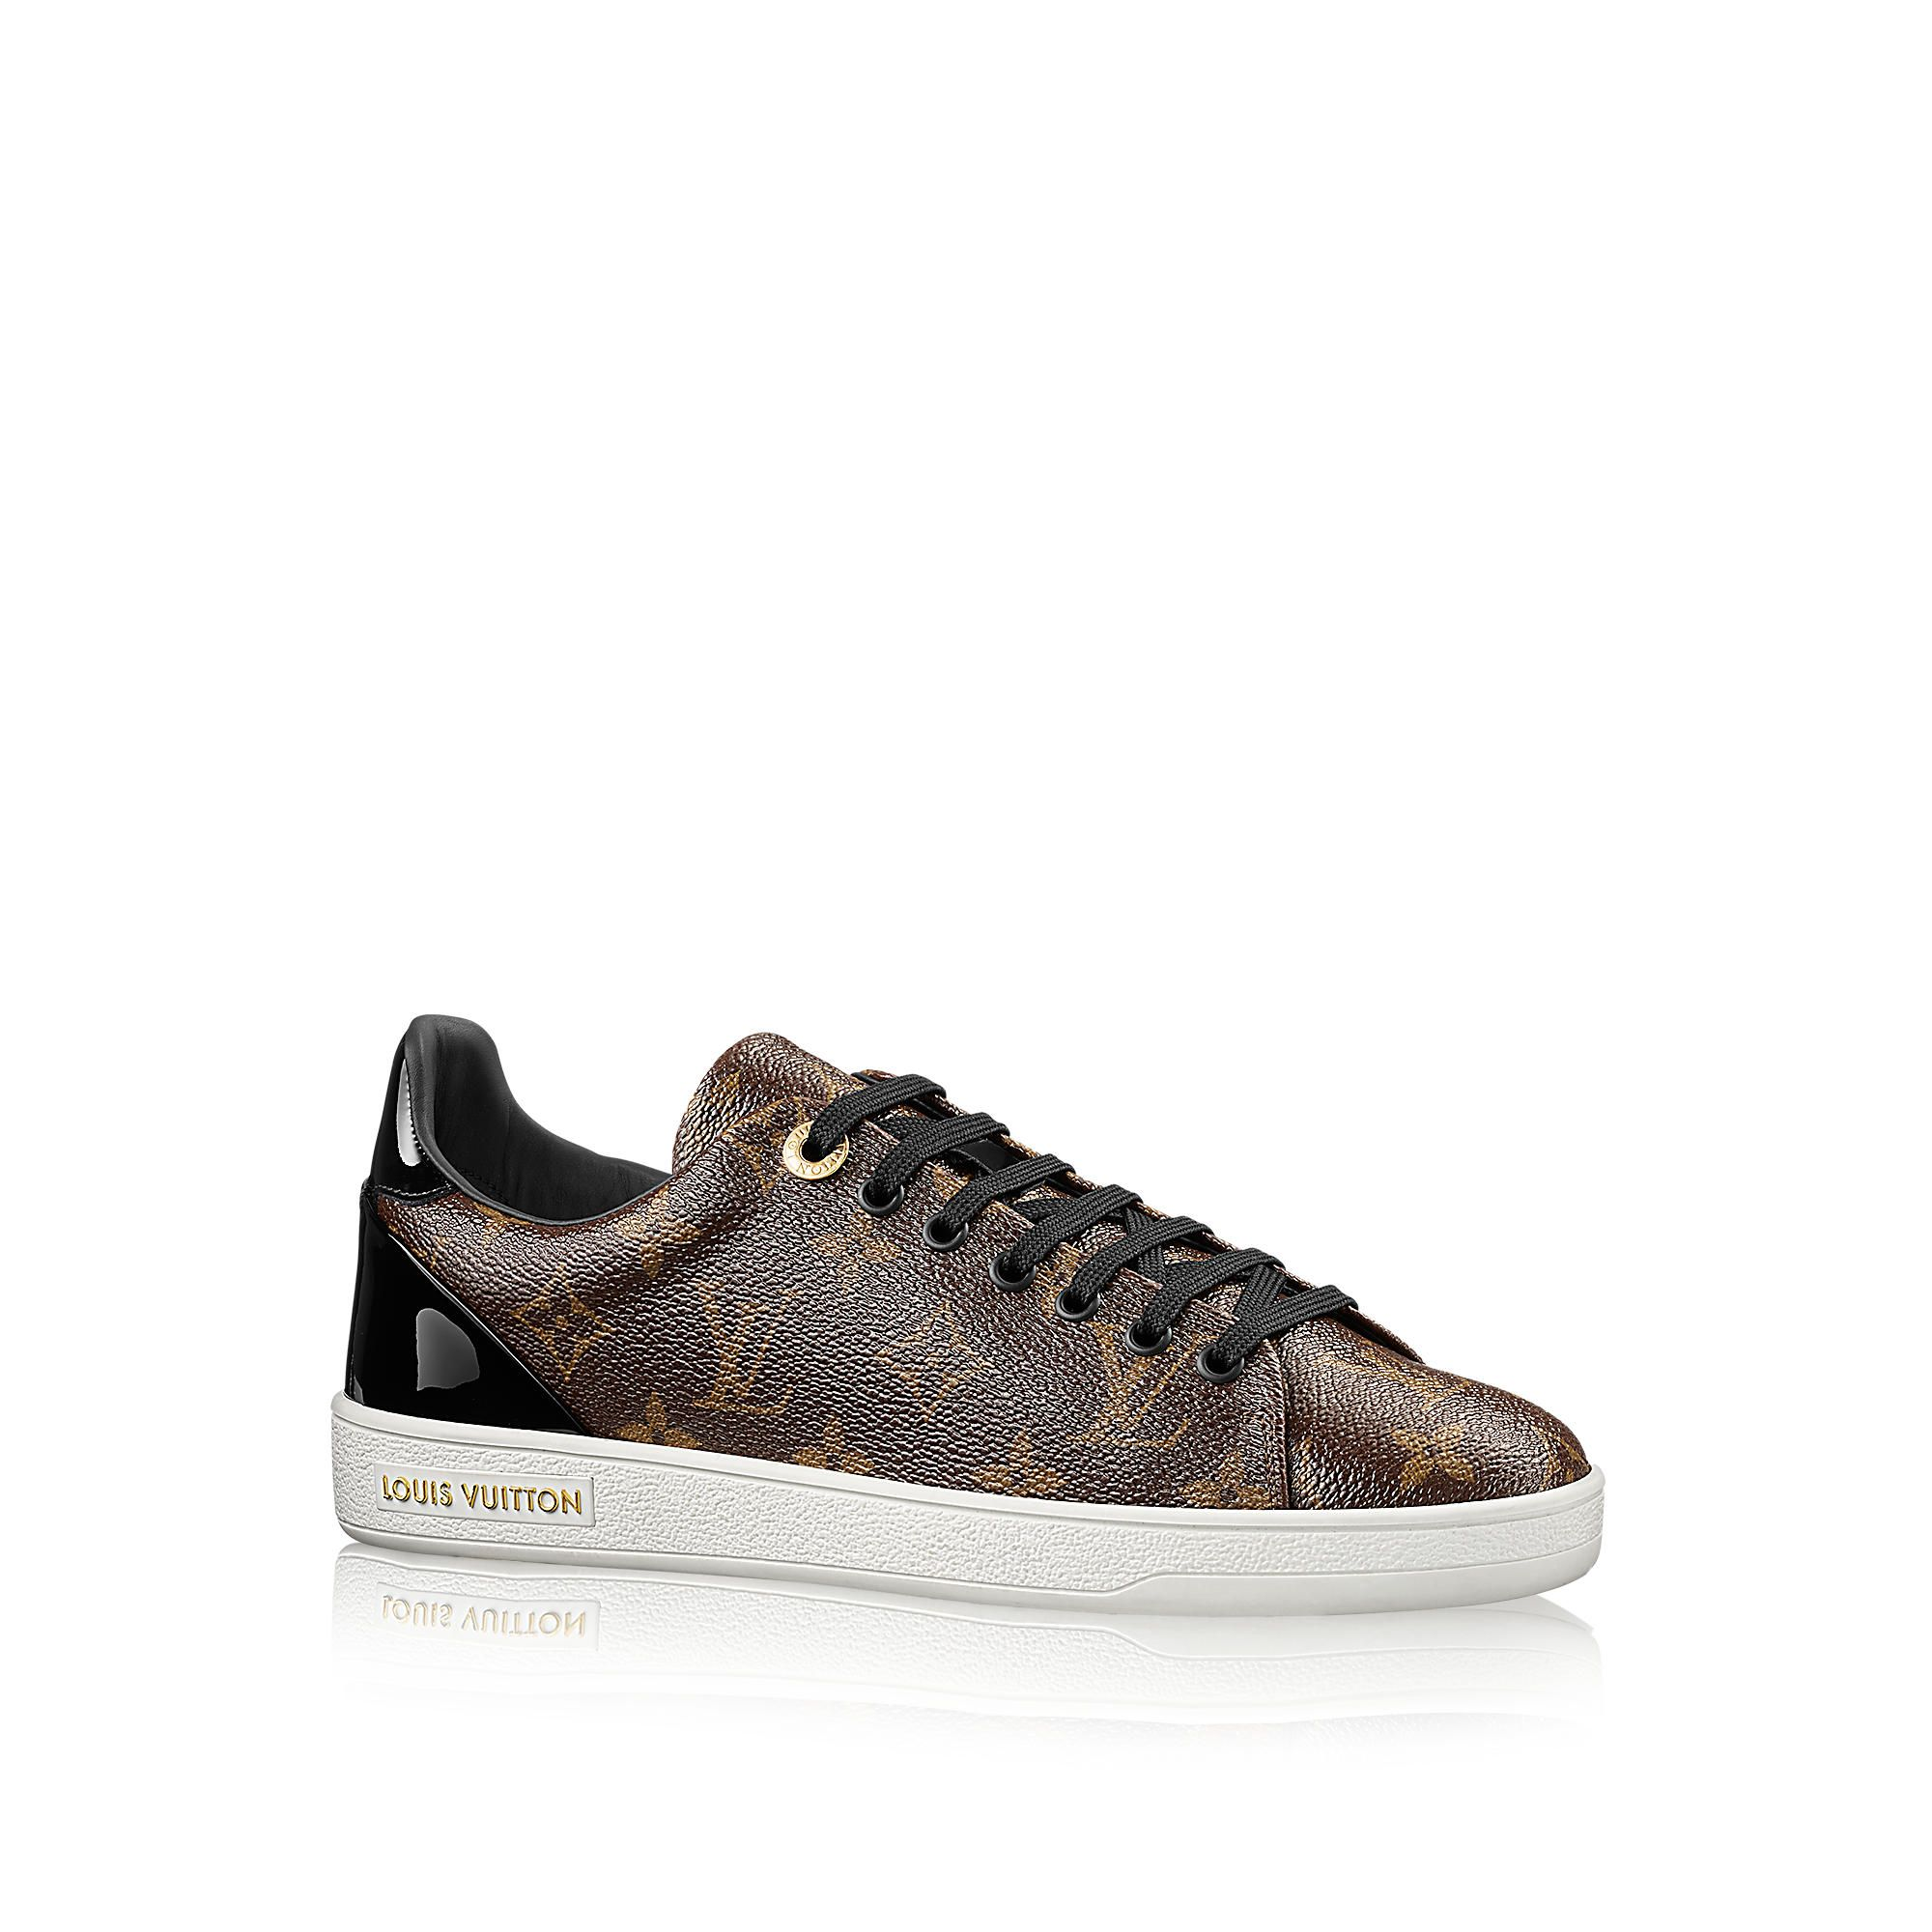 Discover Louis Vuitton Frontrow Sneaker: Reinterpreting the classic tennis  shoe, this stylish sneaker in Louis Vuitton& iconic patent Monogram canvas  has a ...